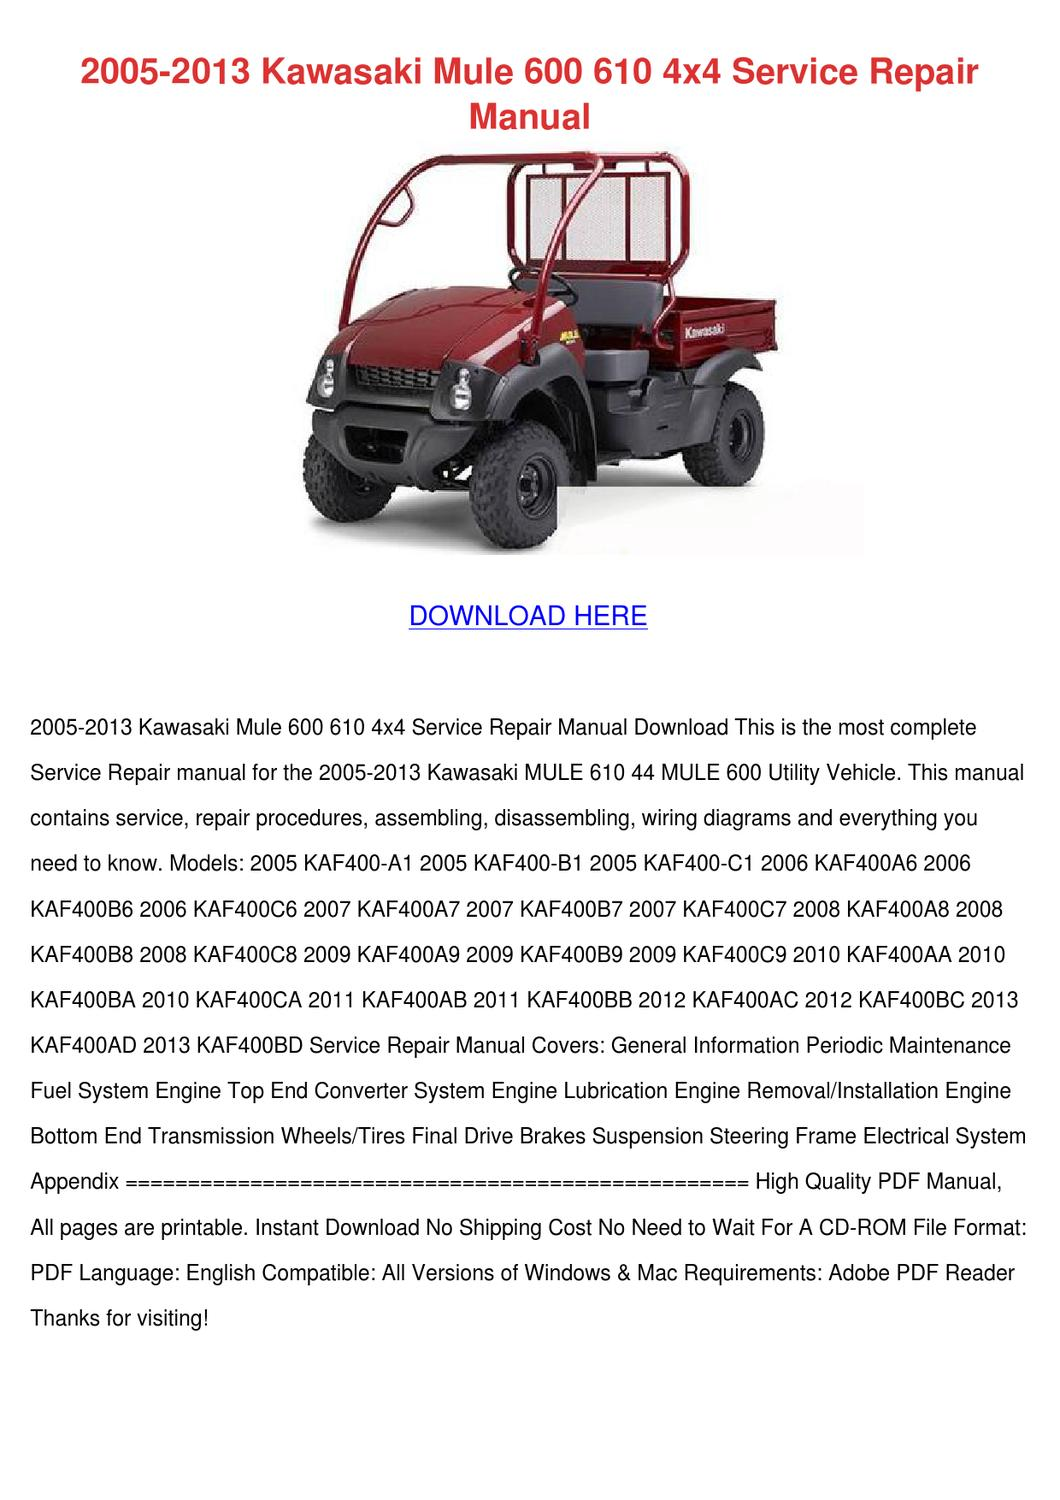 2009 kawasaki mule 600 wiring diagram  honda big red wiring diagram on  kawasaki klf 300